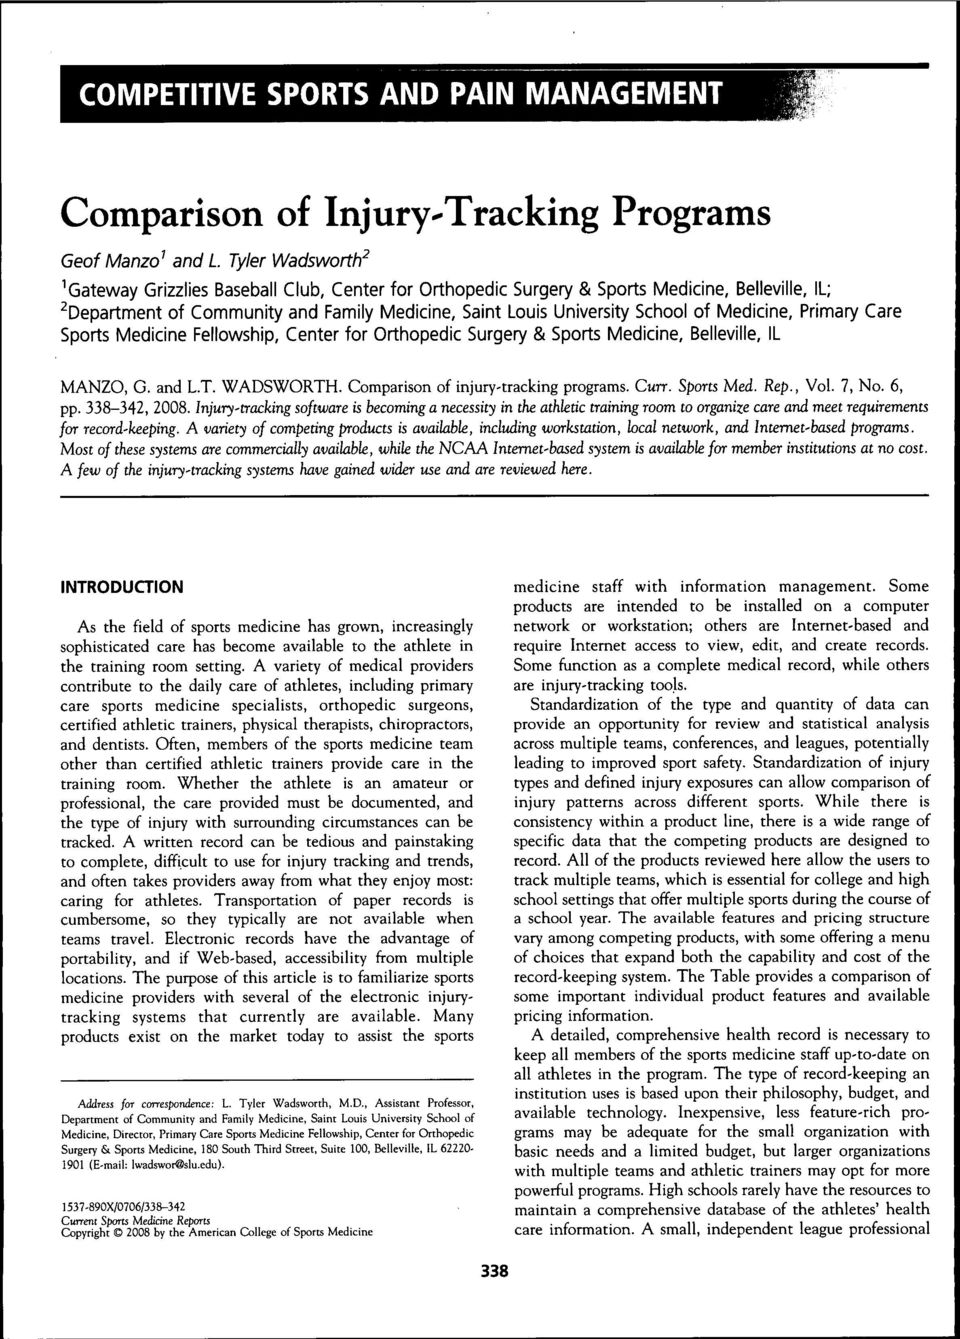 Belleville, IL MANZO, G. and L.T. WADSWORTH. Comparison of injury-tracking programs. Curr. Spmts Med. Rep., Vol. 7,. 6, pp. 338-342, 2008.